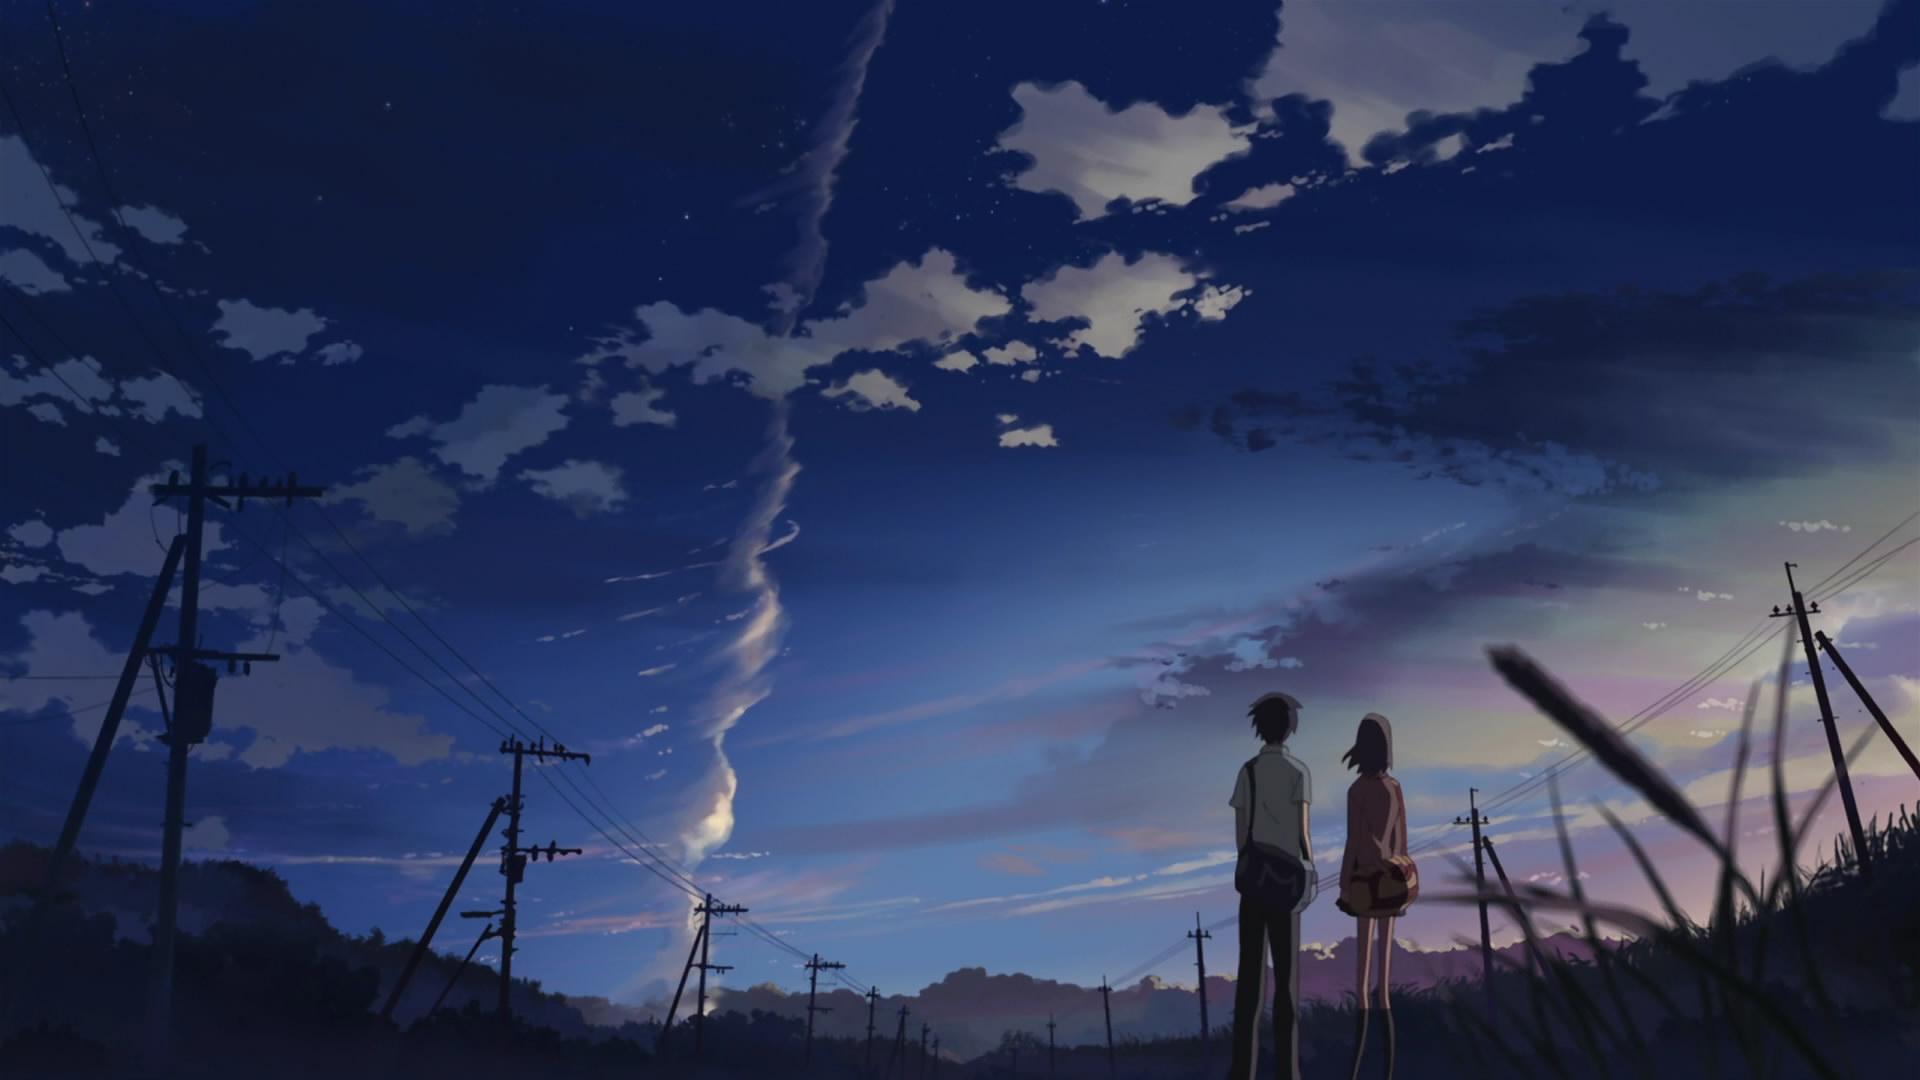 5 centimeters per second hd wallpaper background image 1920x1080 id82410 wallpaper abyss